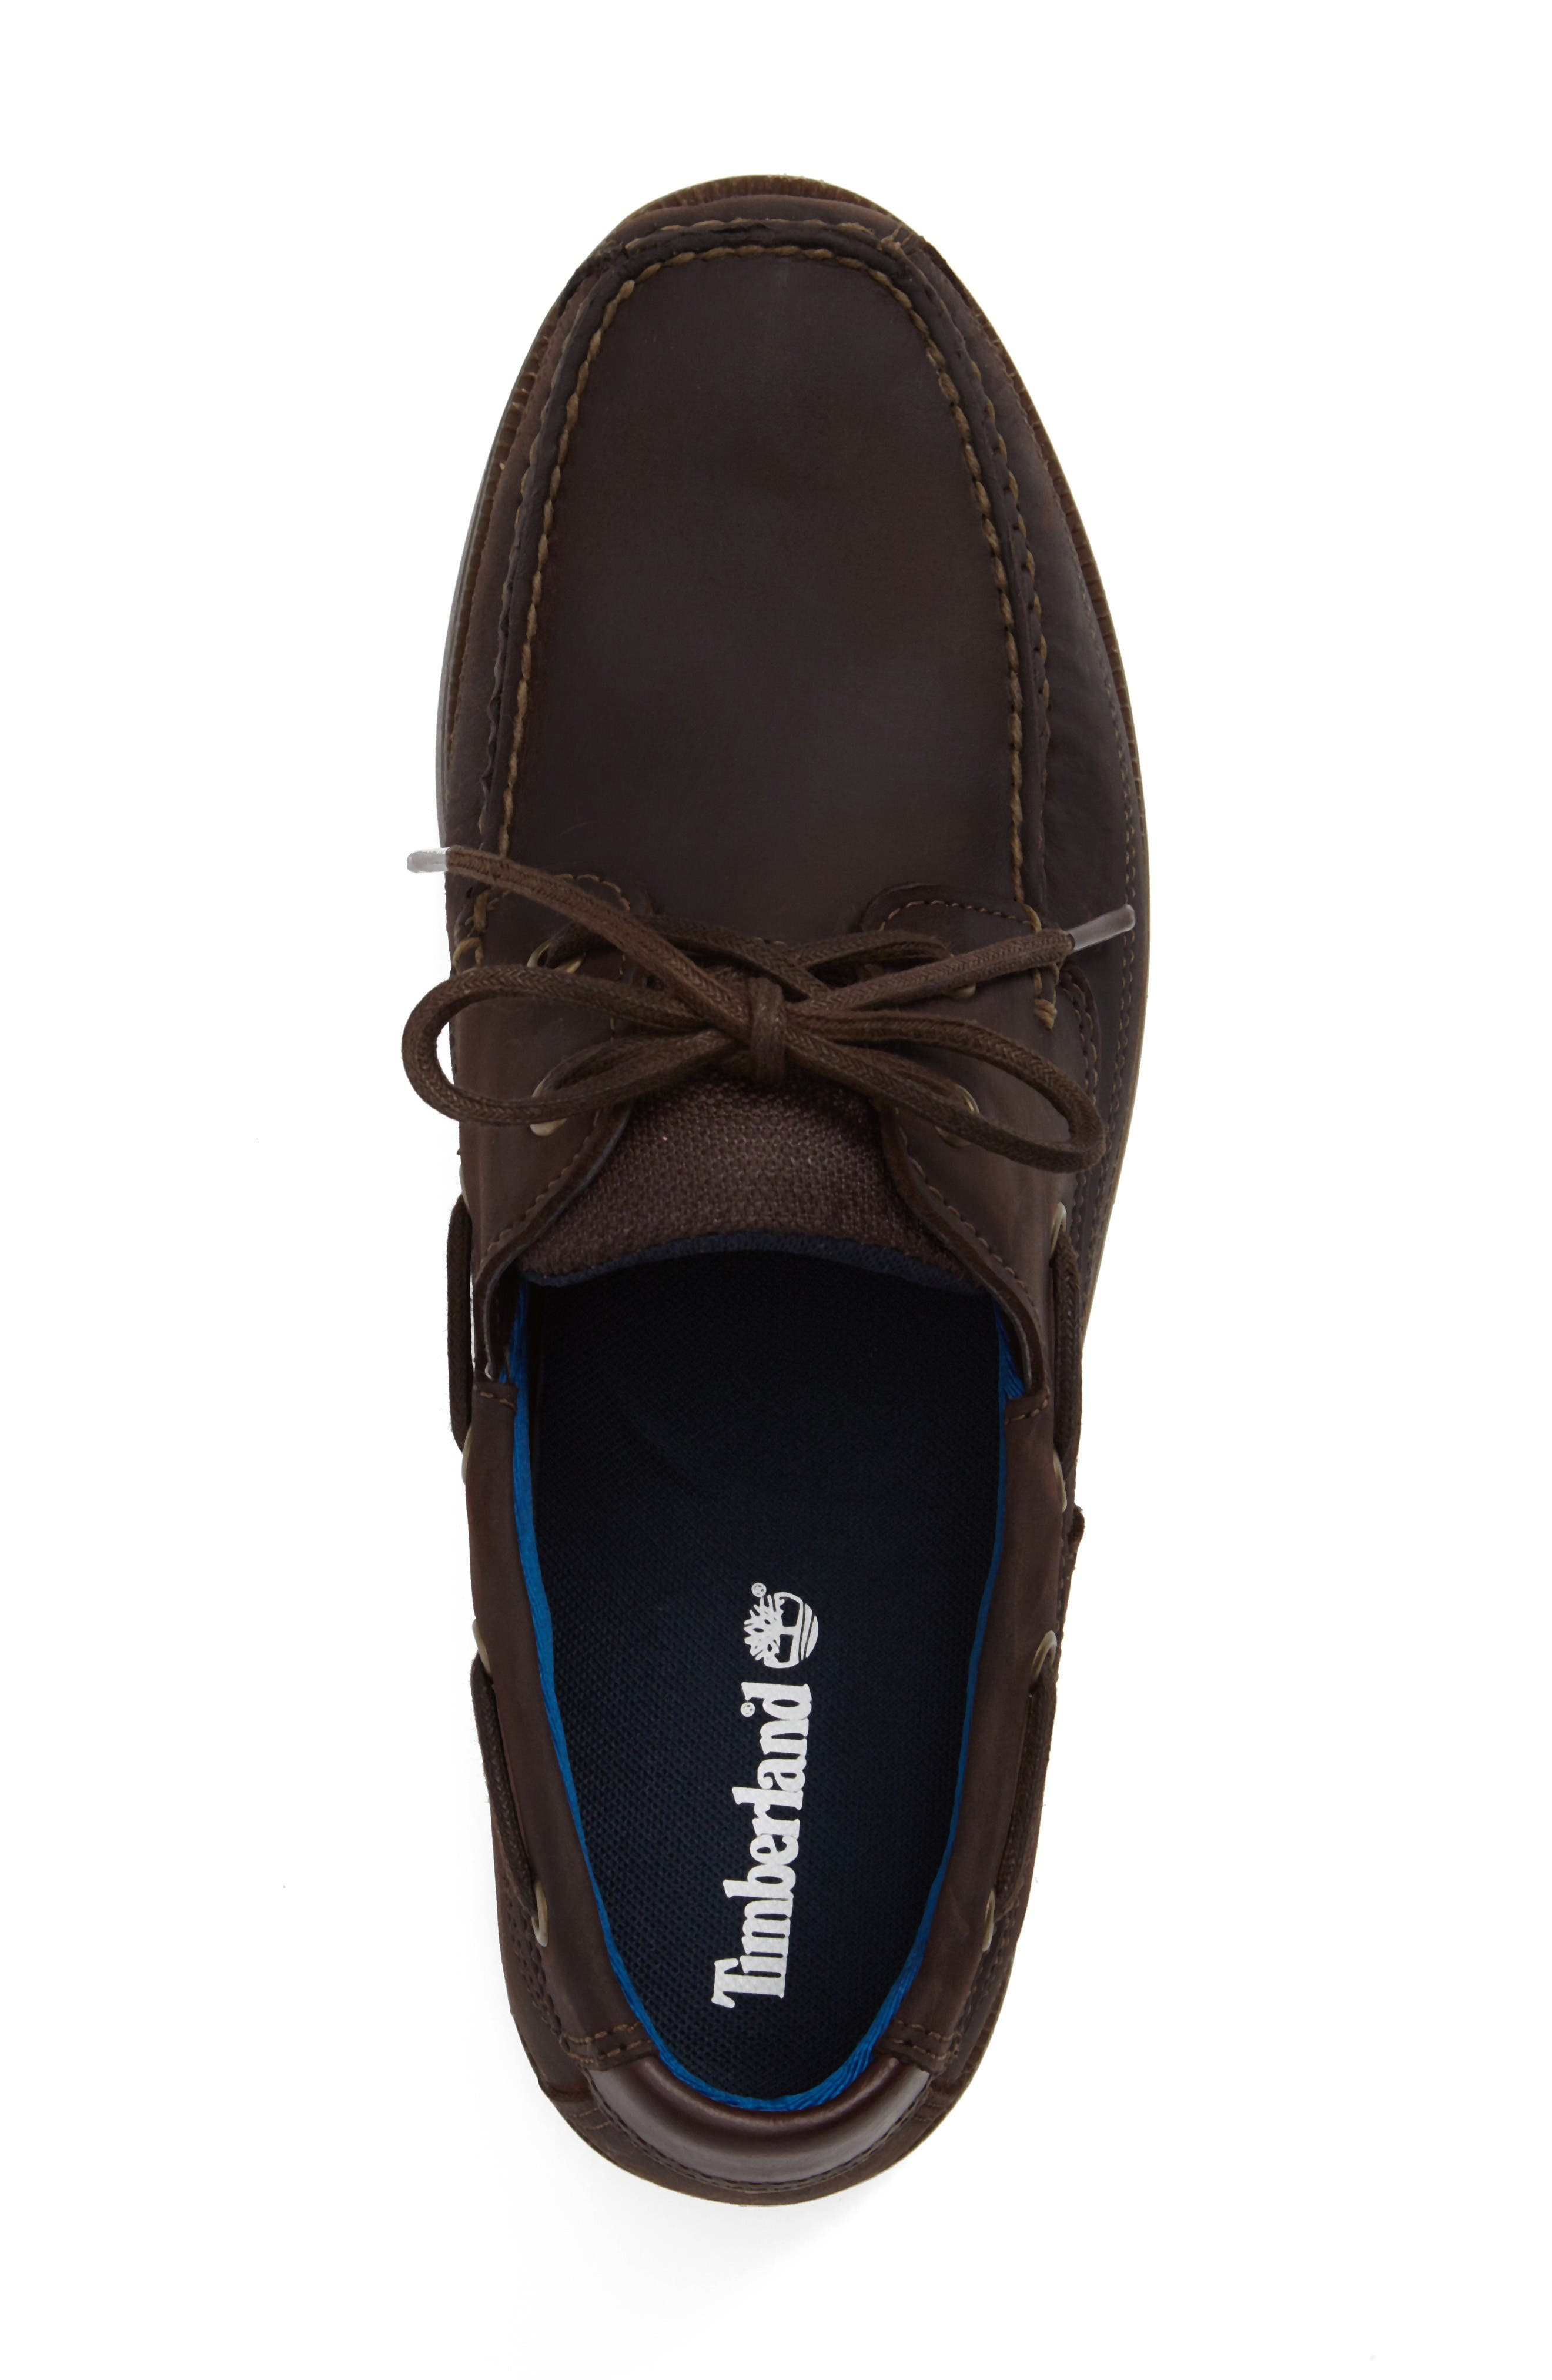 Piper Cove FG Boat Shoe,                             Alternate thumbnail 3, color,                             Chocolate Leather